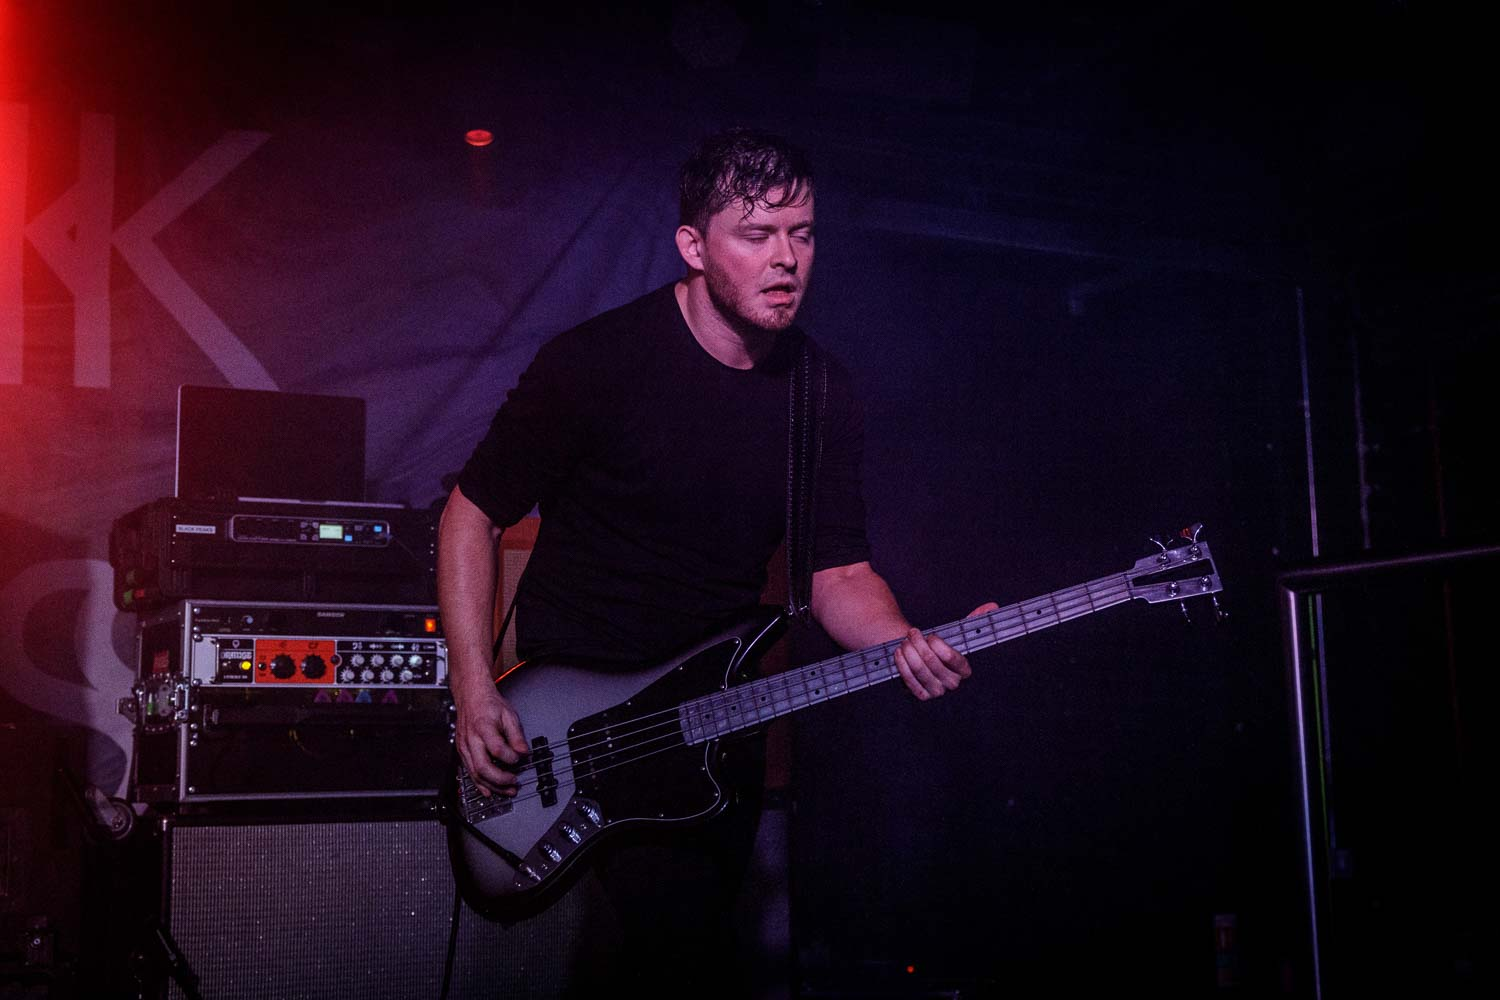 Black Peaks live at Academy Club in Manchester on October 17th 2018. ©Johann Wierzbicki | ROCKFLESH